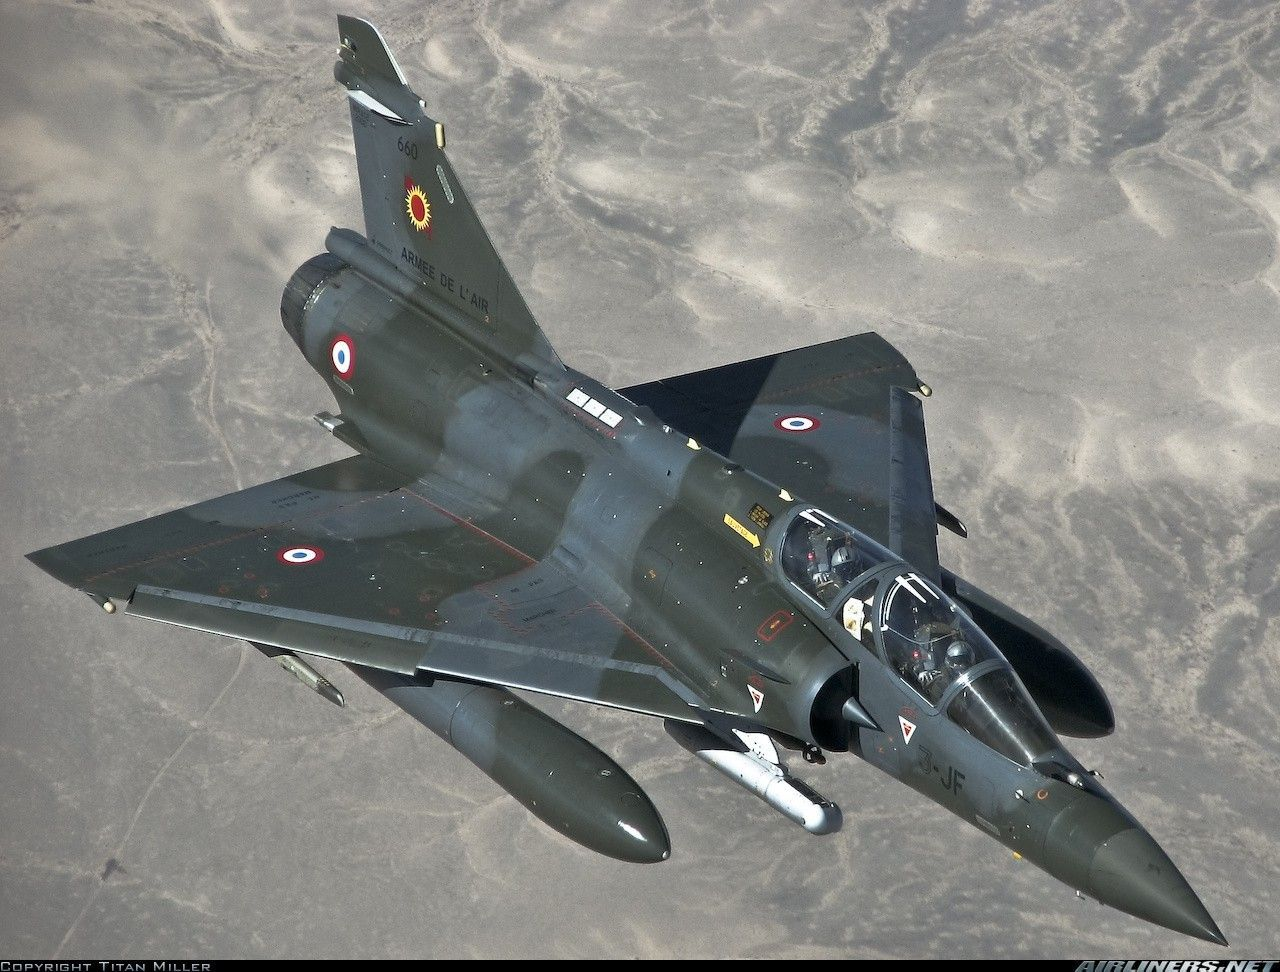 Mirage 2000 Fighter planes aircraft construction vehicles Jet 7